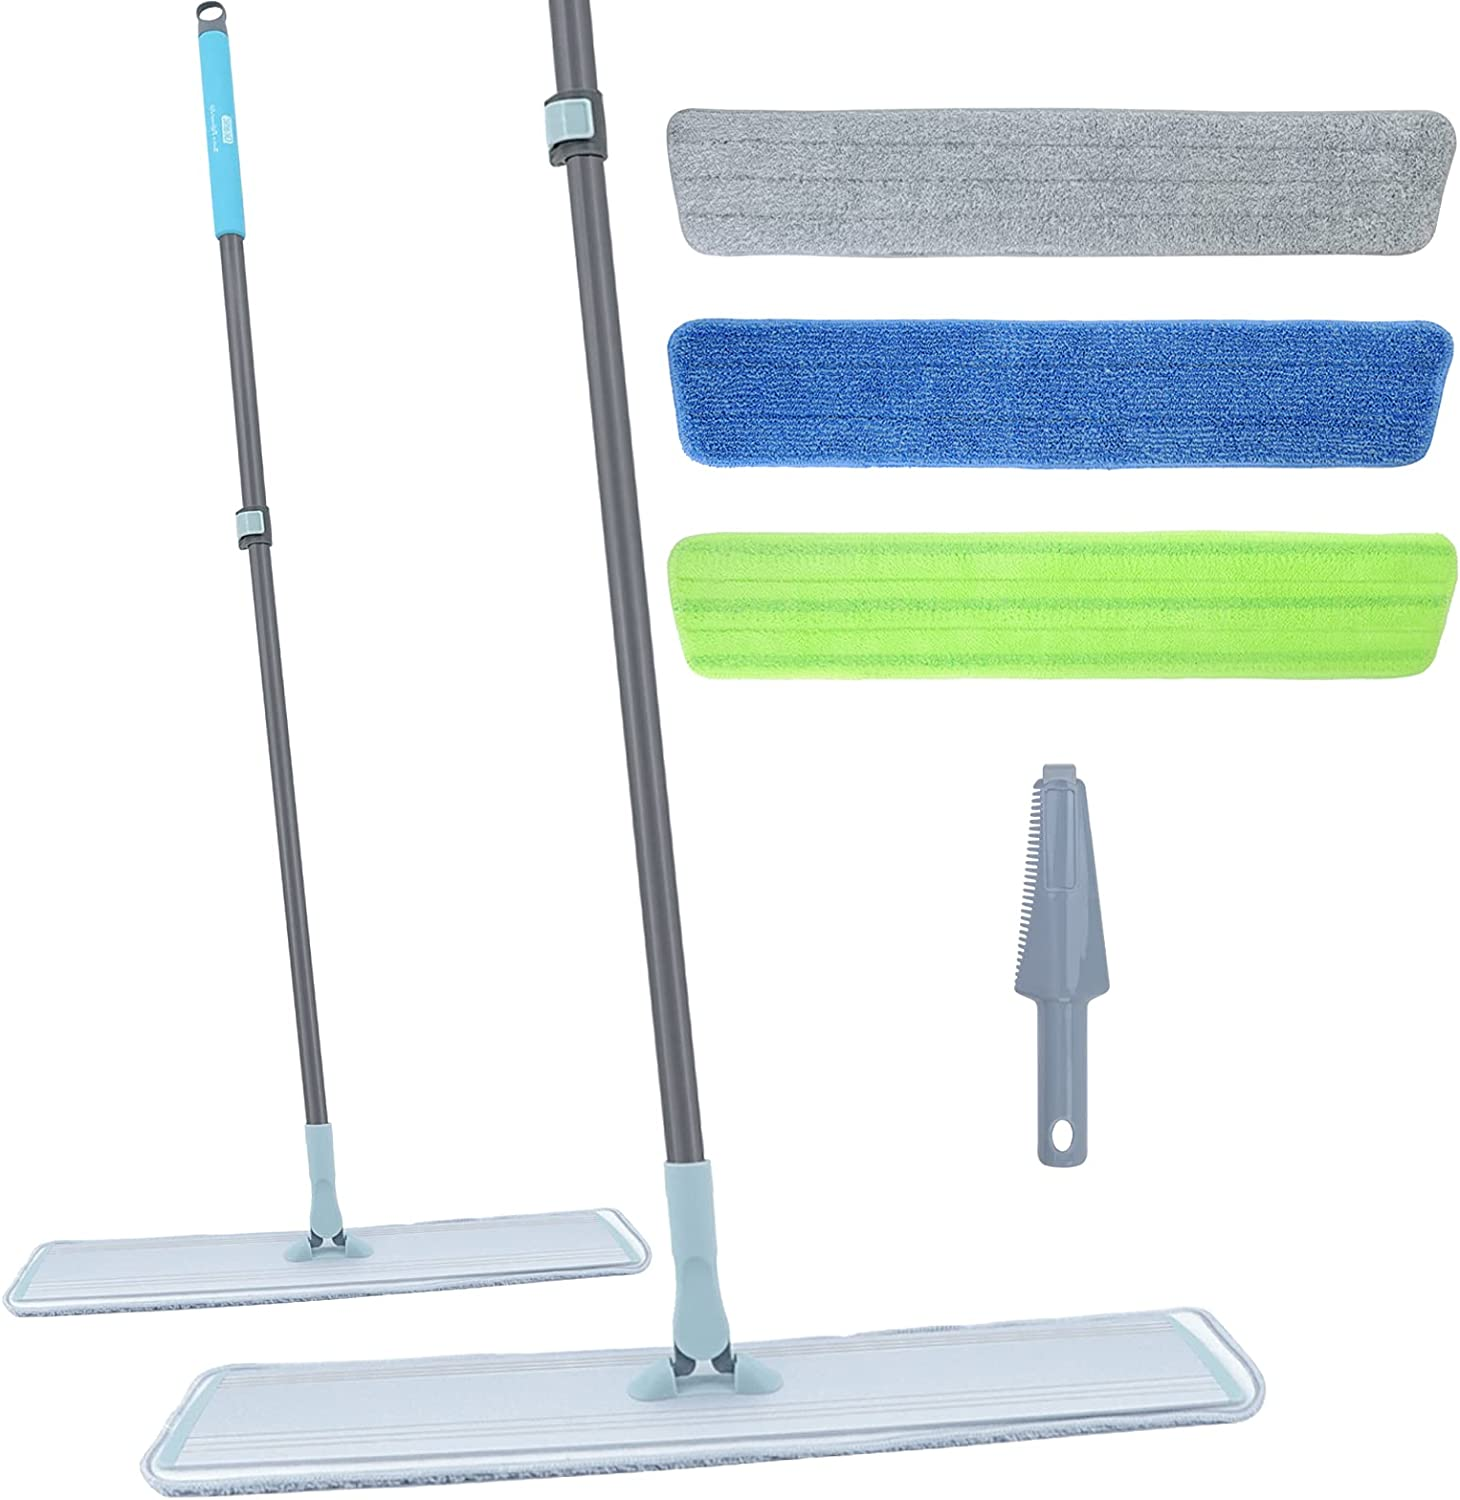 24inch Professional Microfiber Mop Dry wi Wet for Selling Kansas City Mall rankings Hardwood